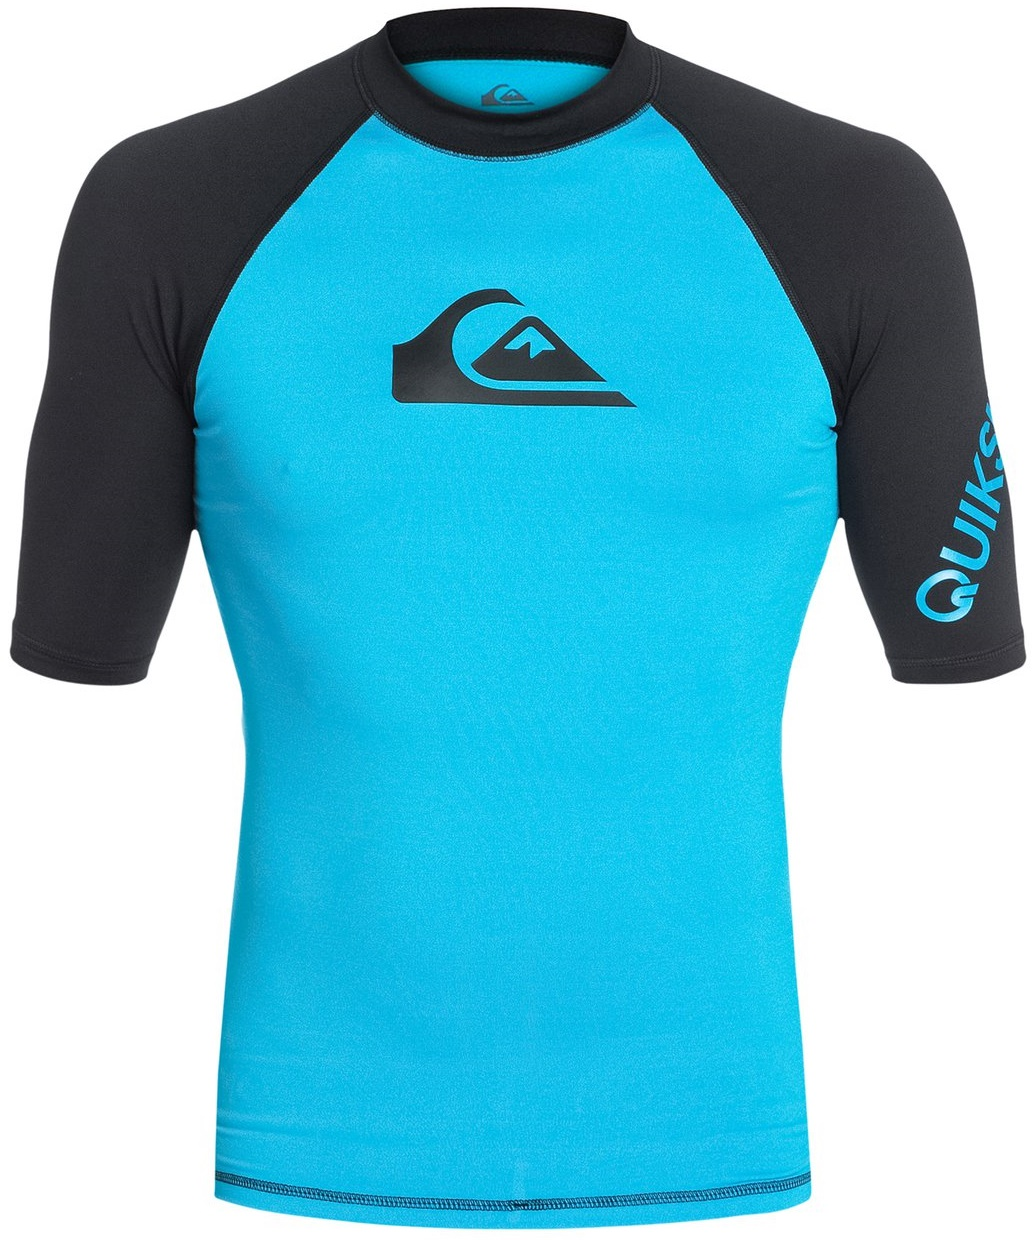 Quiksilver Men's Rashguard Short Sleeve All Time 50+ UV Protection - Blue/Black